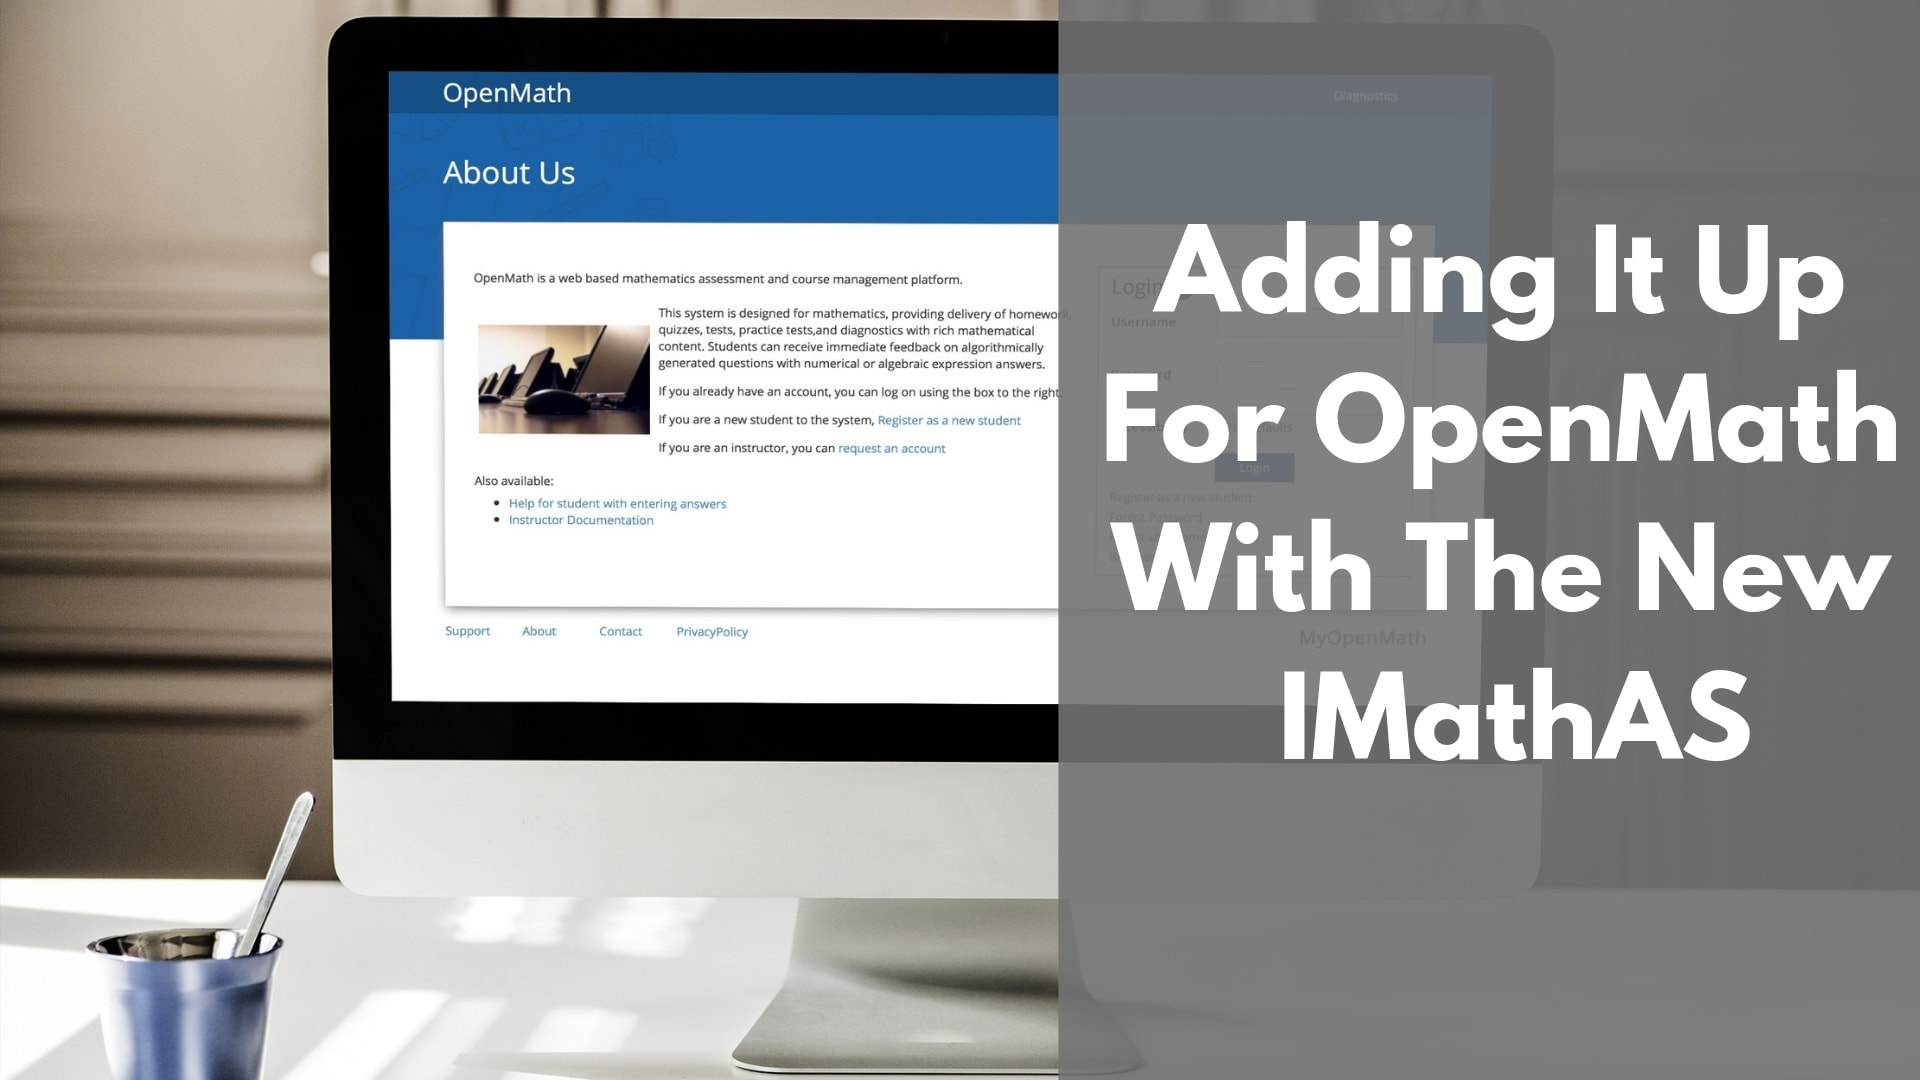 Adding It Up For OpenMath With The New IMathAS